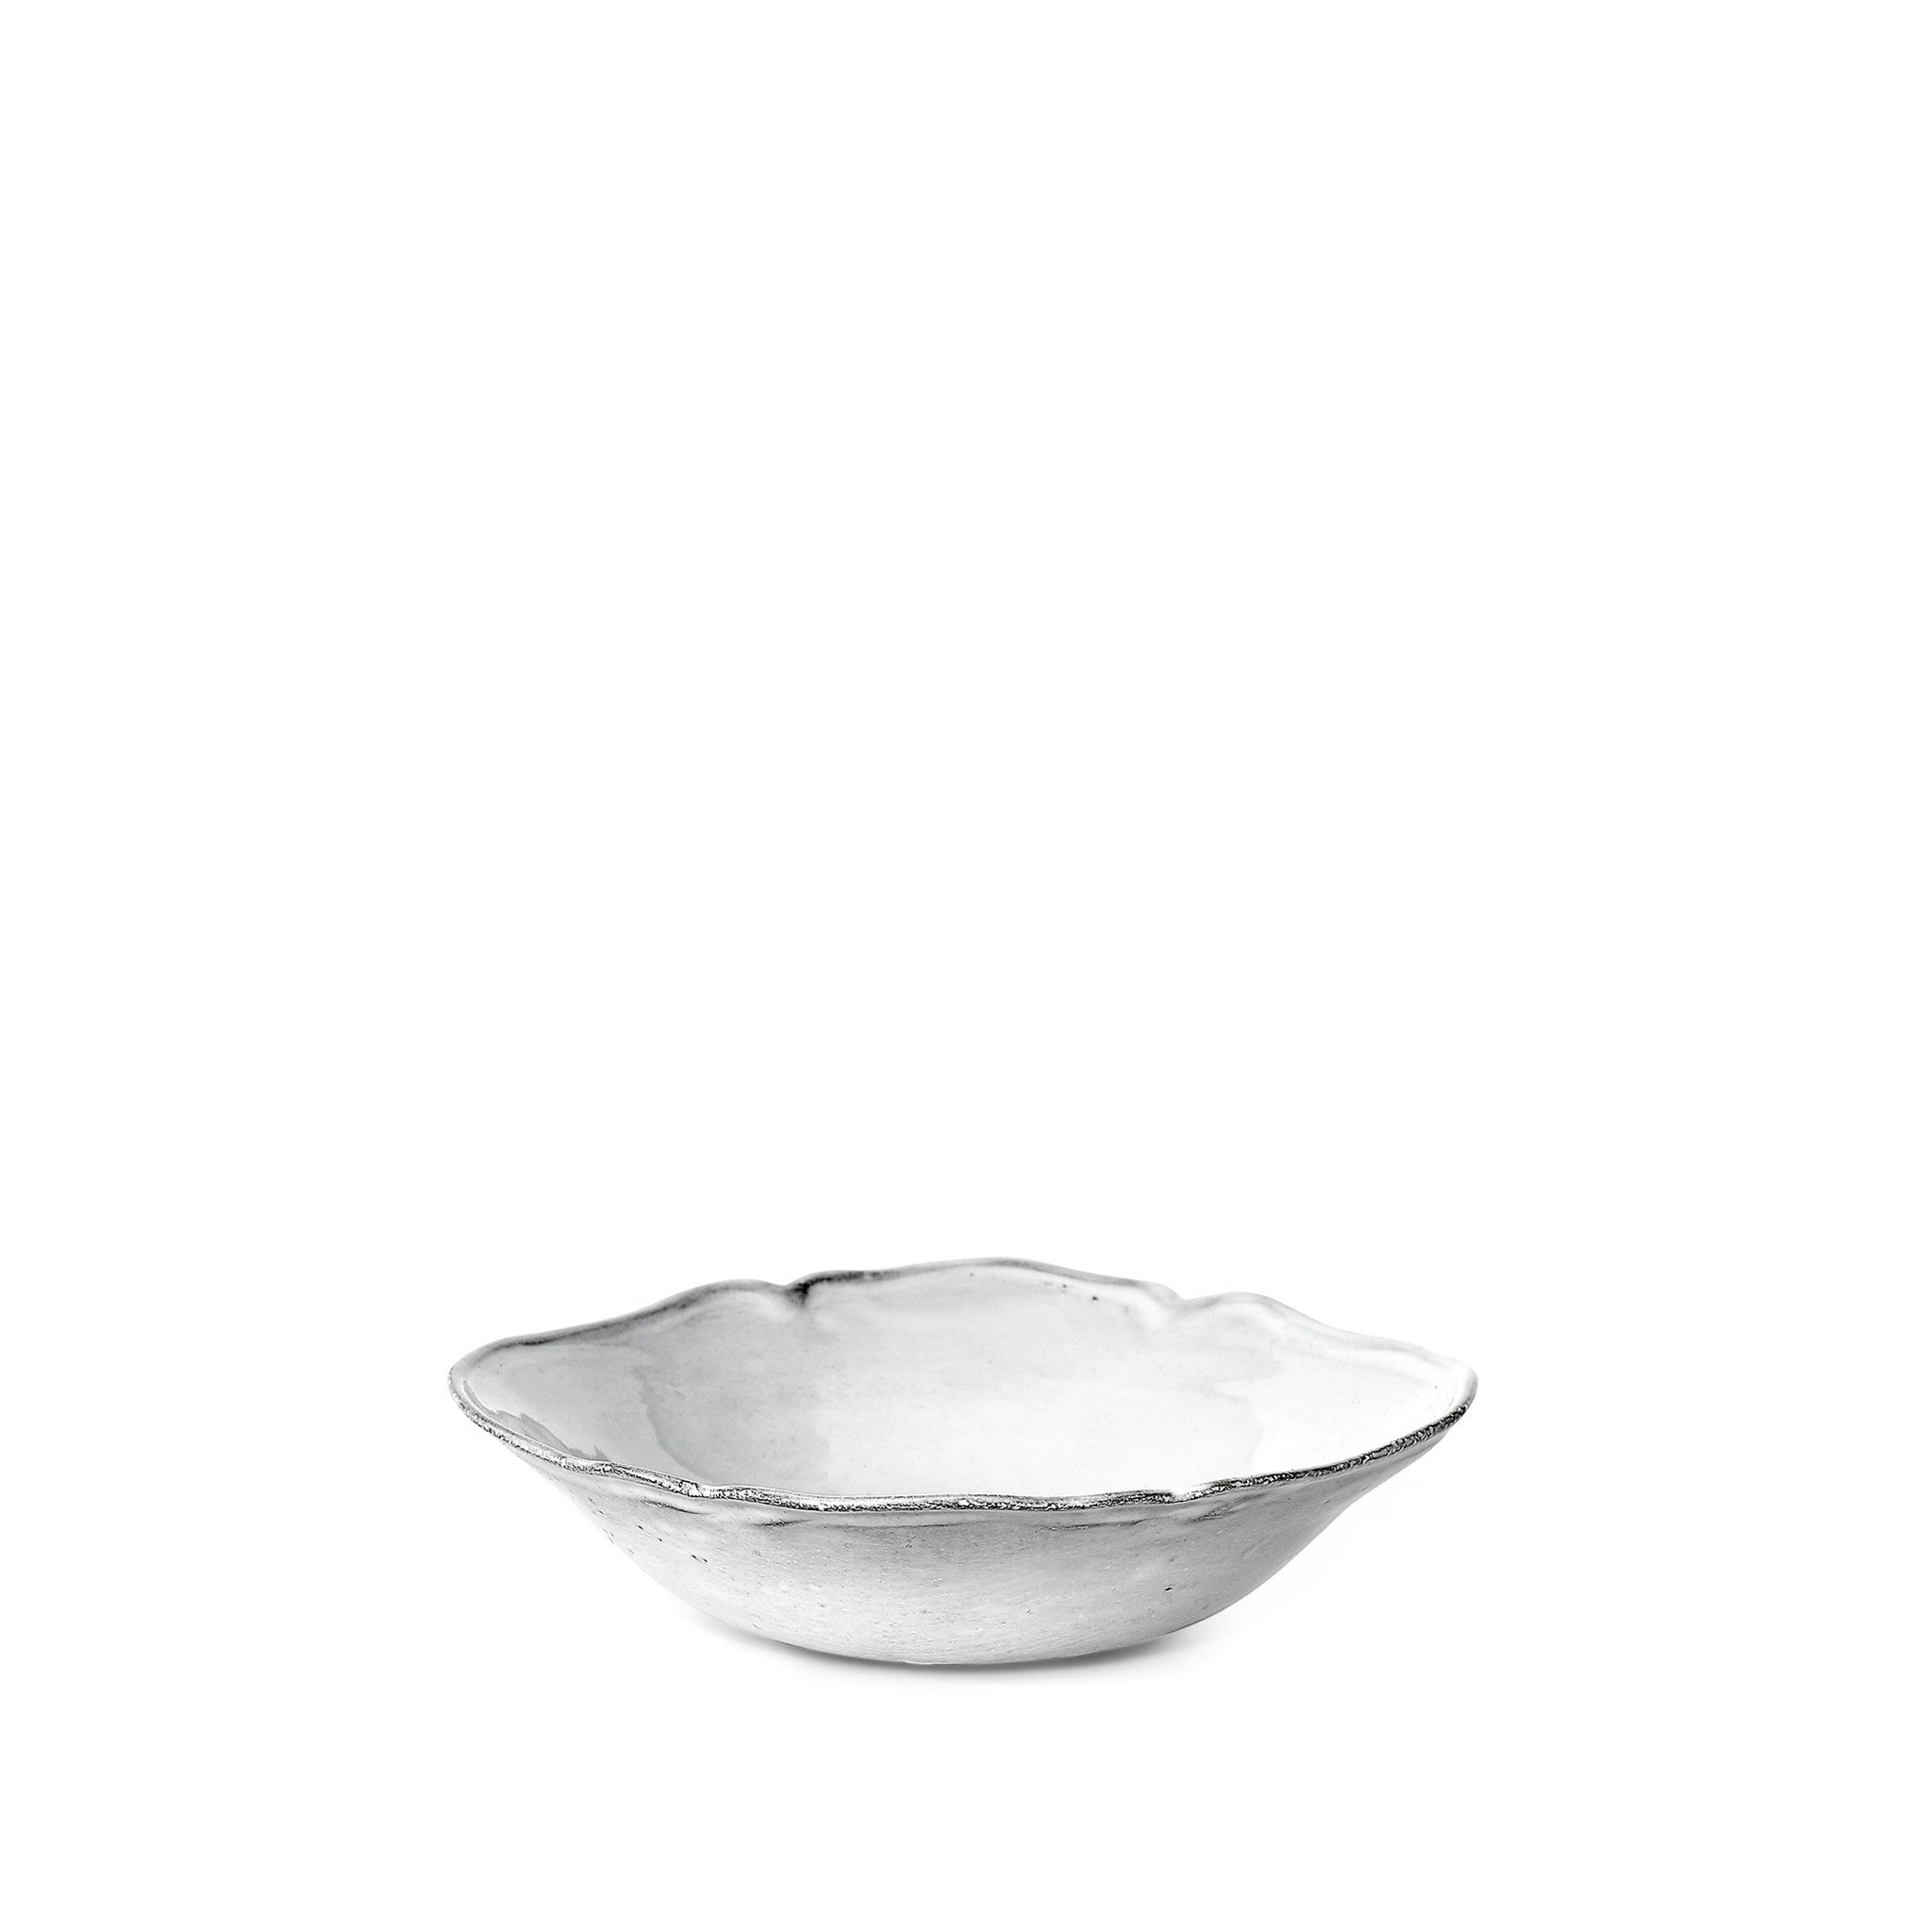 Bac Small Soup Bowl by Astier de Villatte